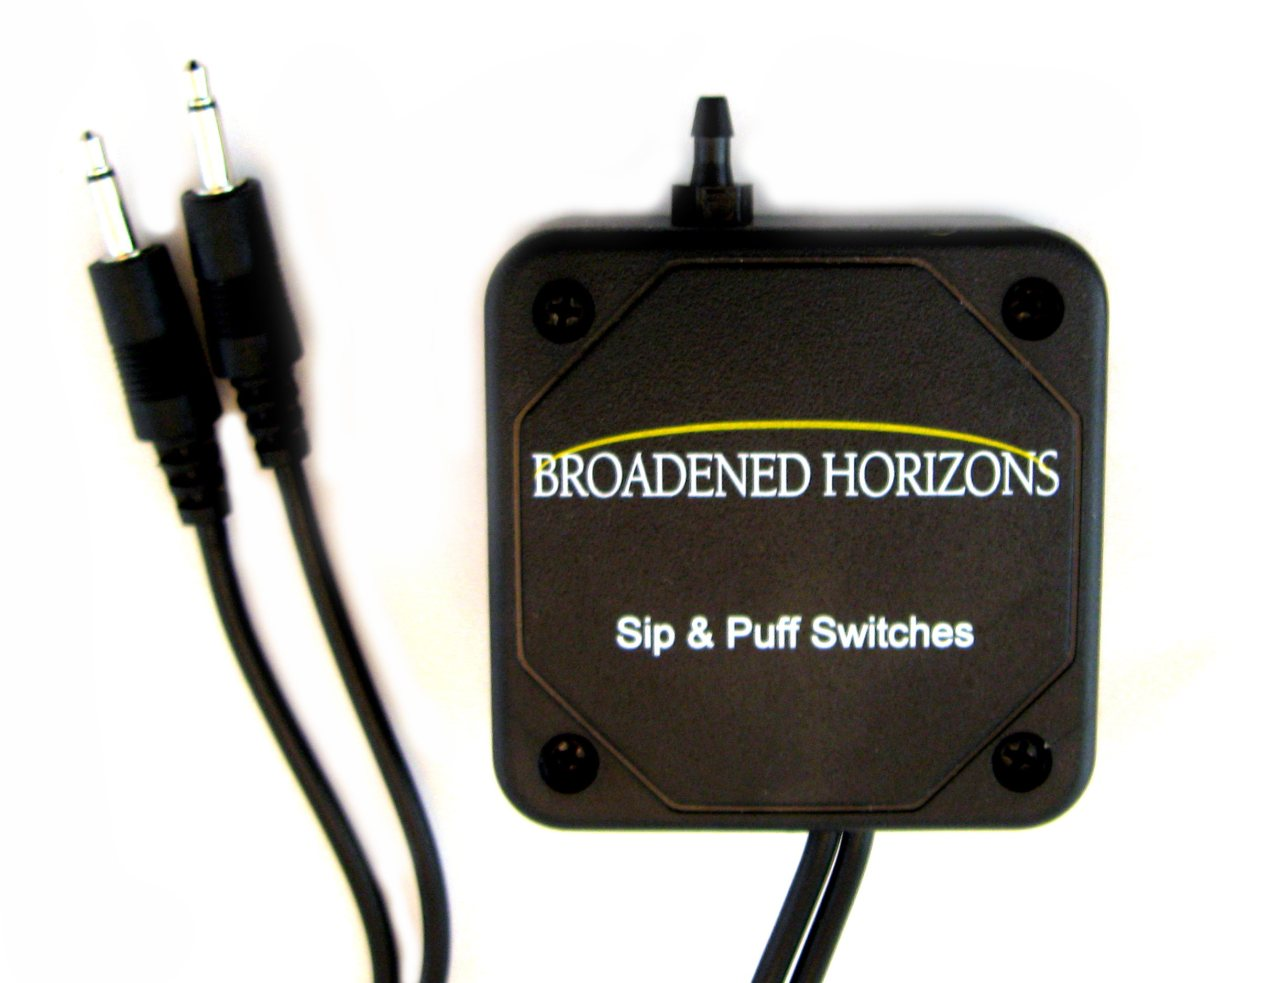 Sip-n-Puff Switches - Broadened Horizons Direct